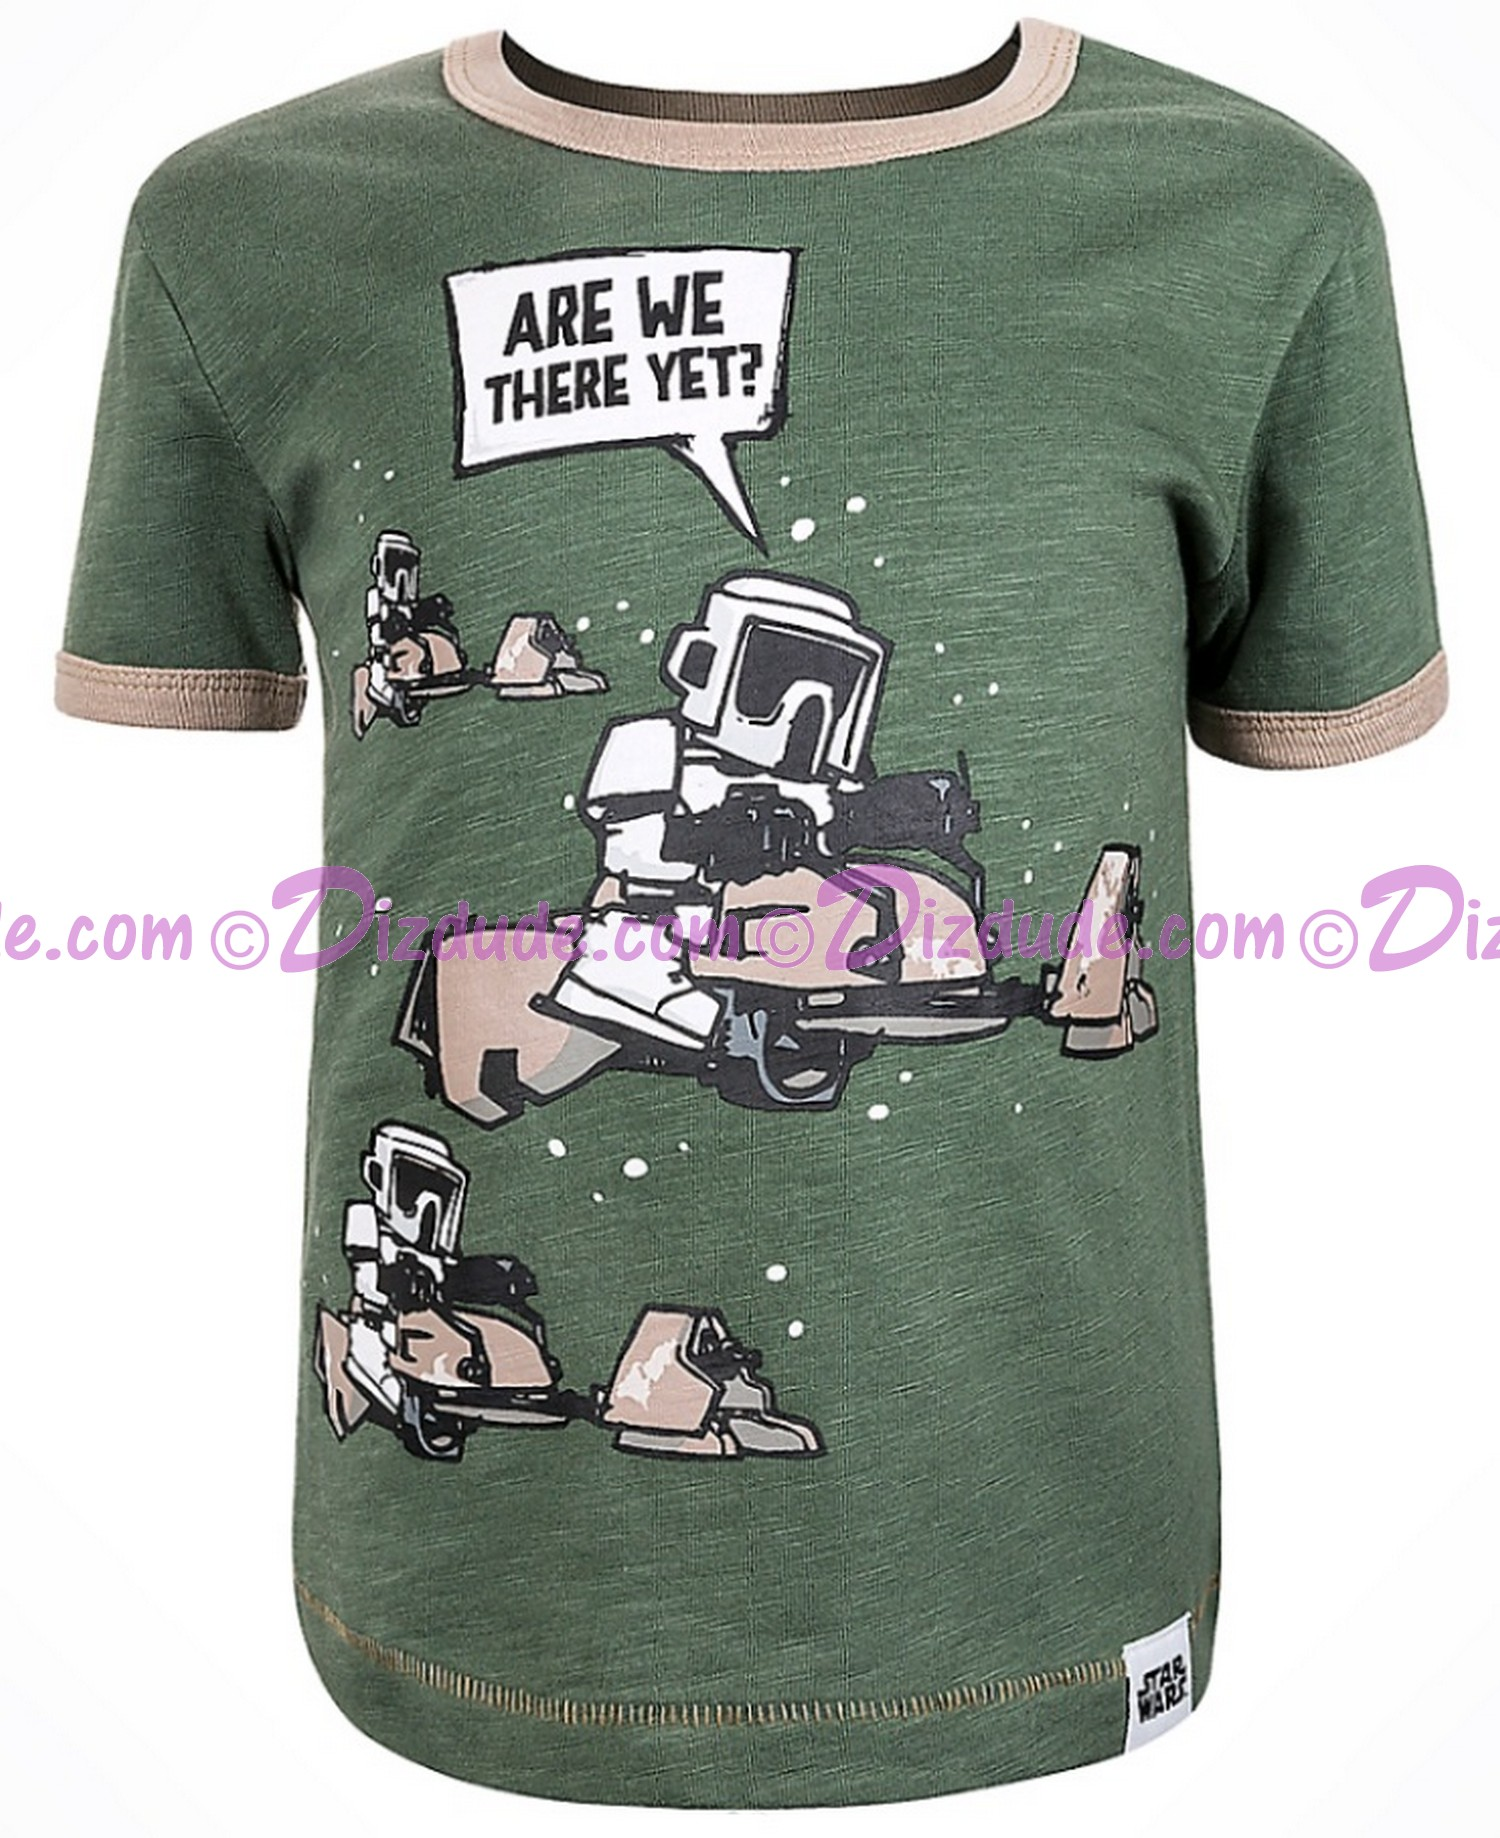 Disney Star Wars Episode VIII: The Last Jedi - Are We There Yet? Biker Scout Toddler Ringer T-Shirt (Tshirt, T shirt or Tee) © Dizdude.com